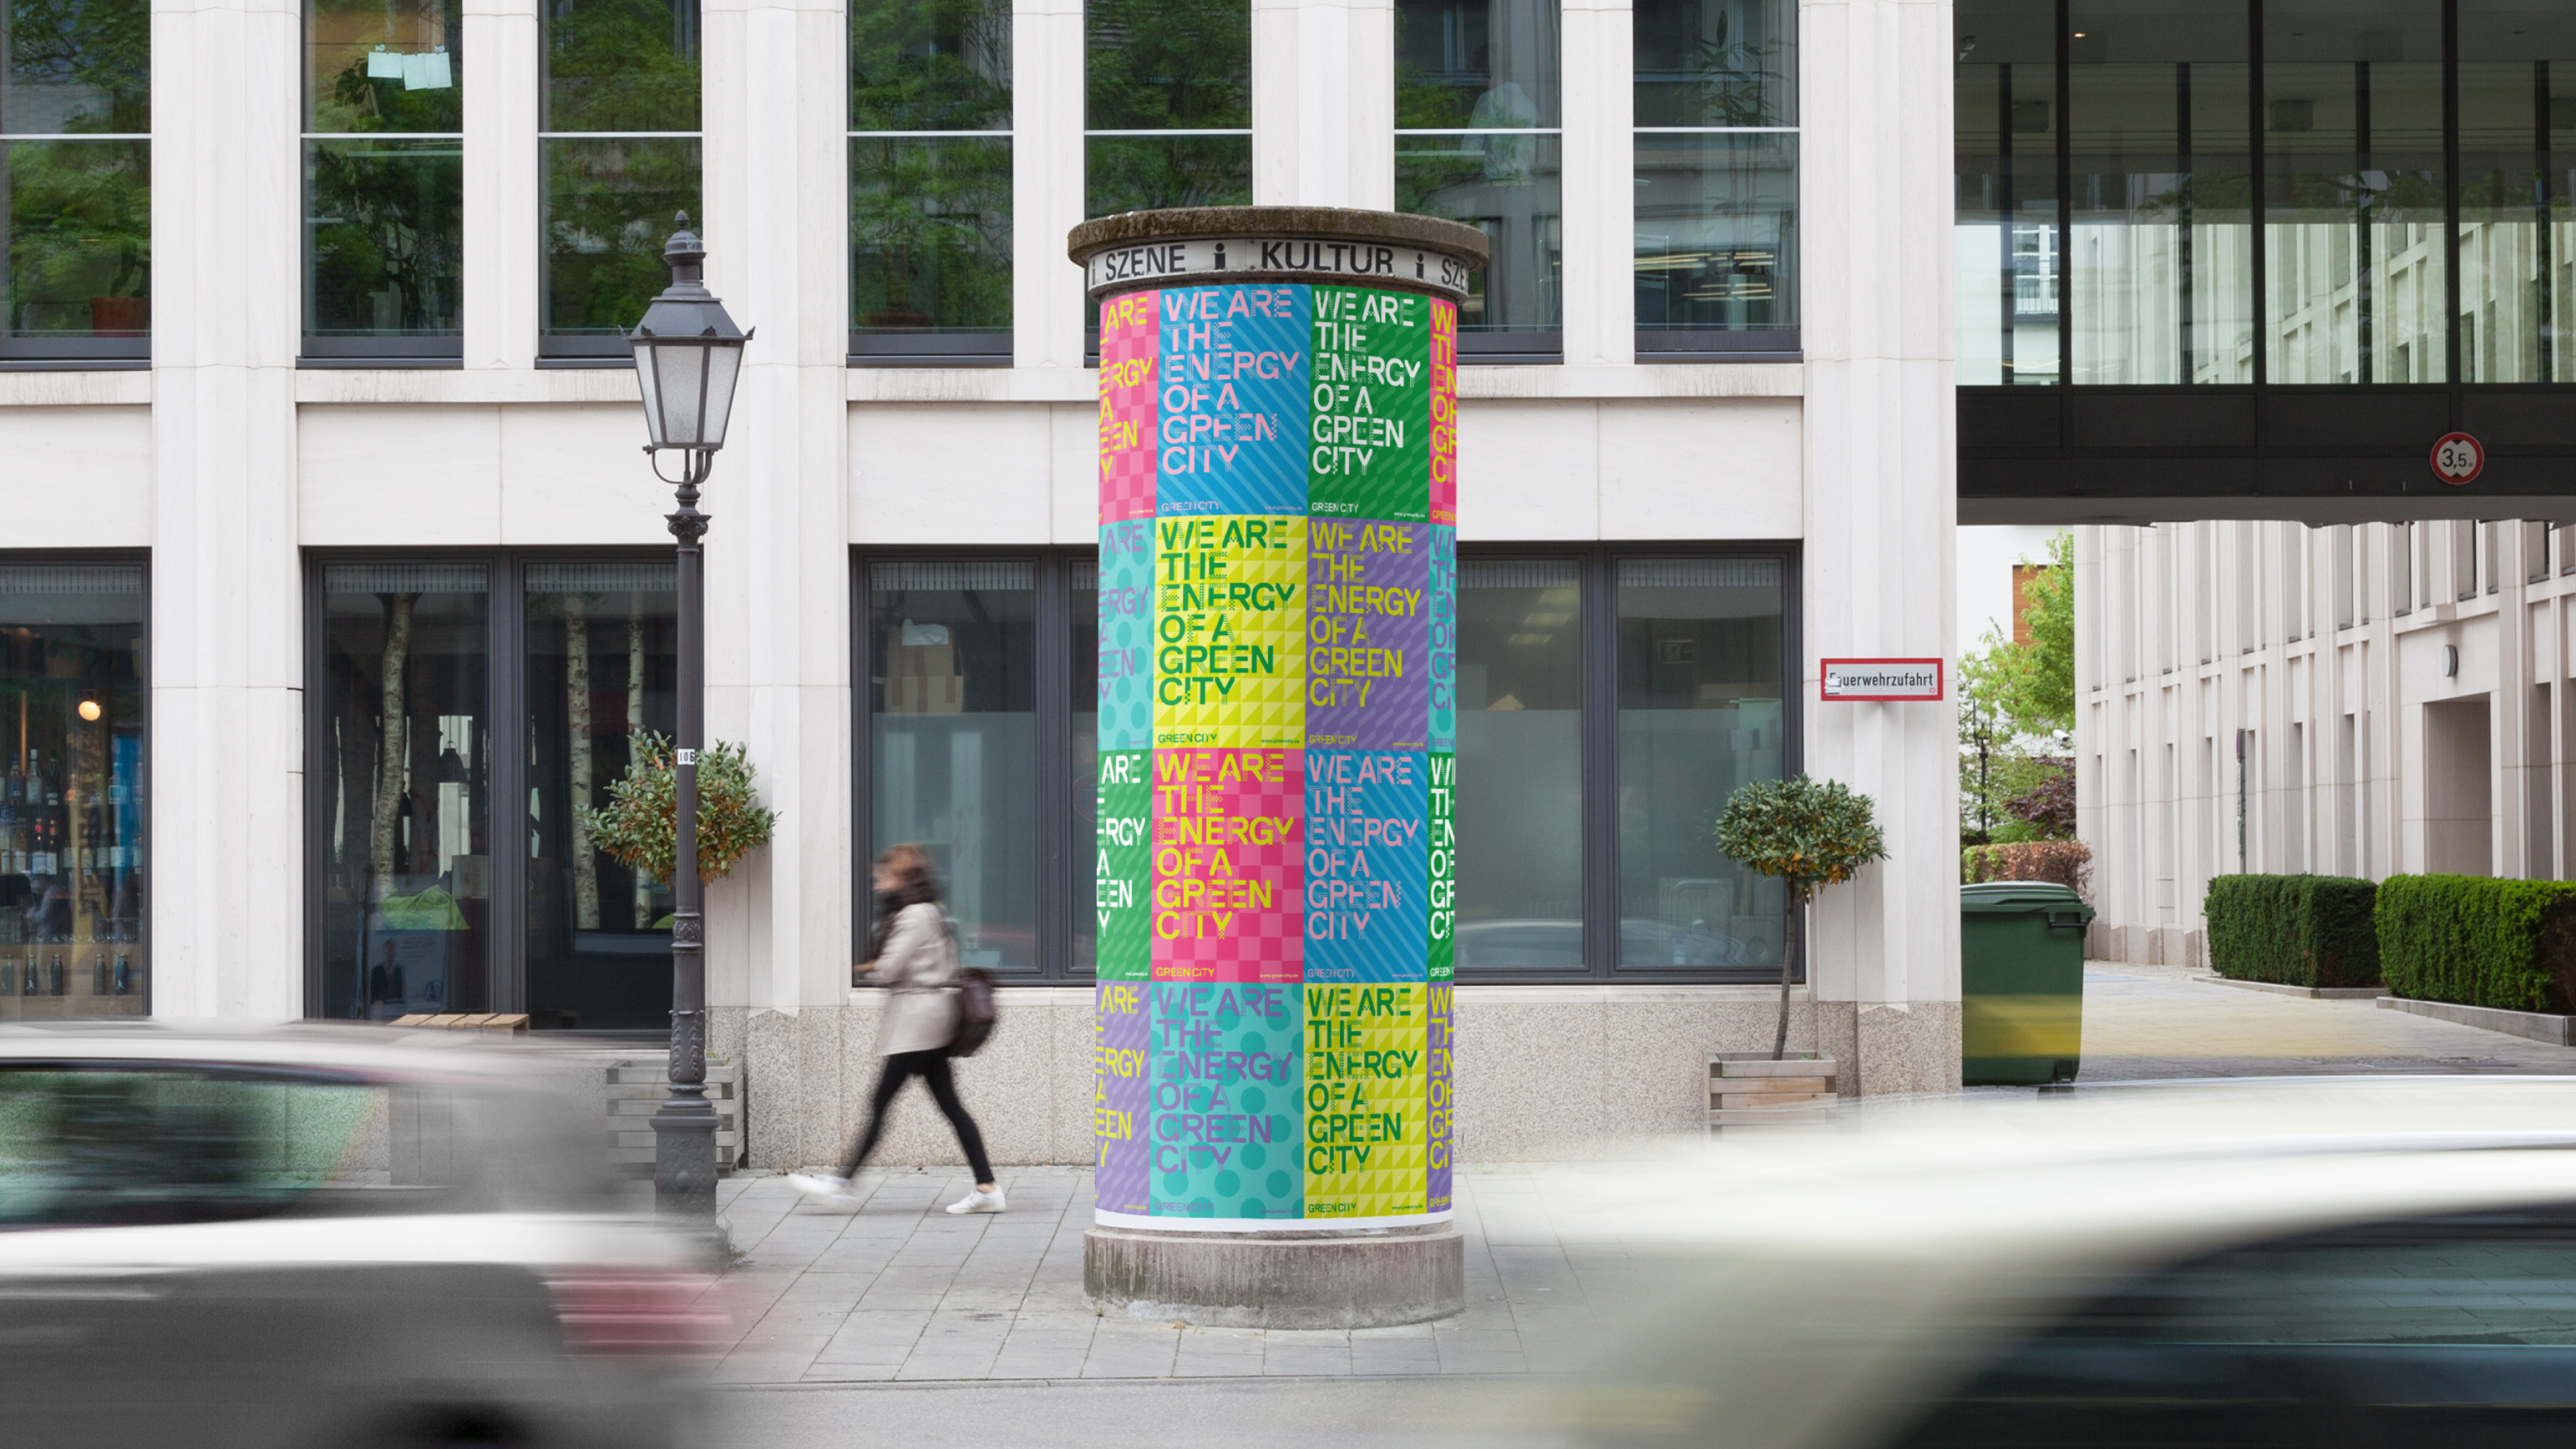 Many colourful Green City posters stick to an advertising pillar in Munich.